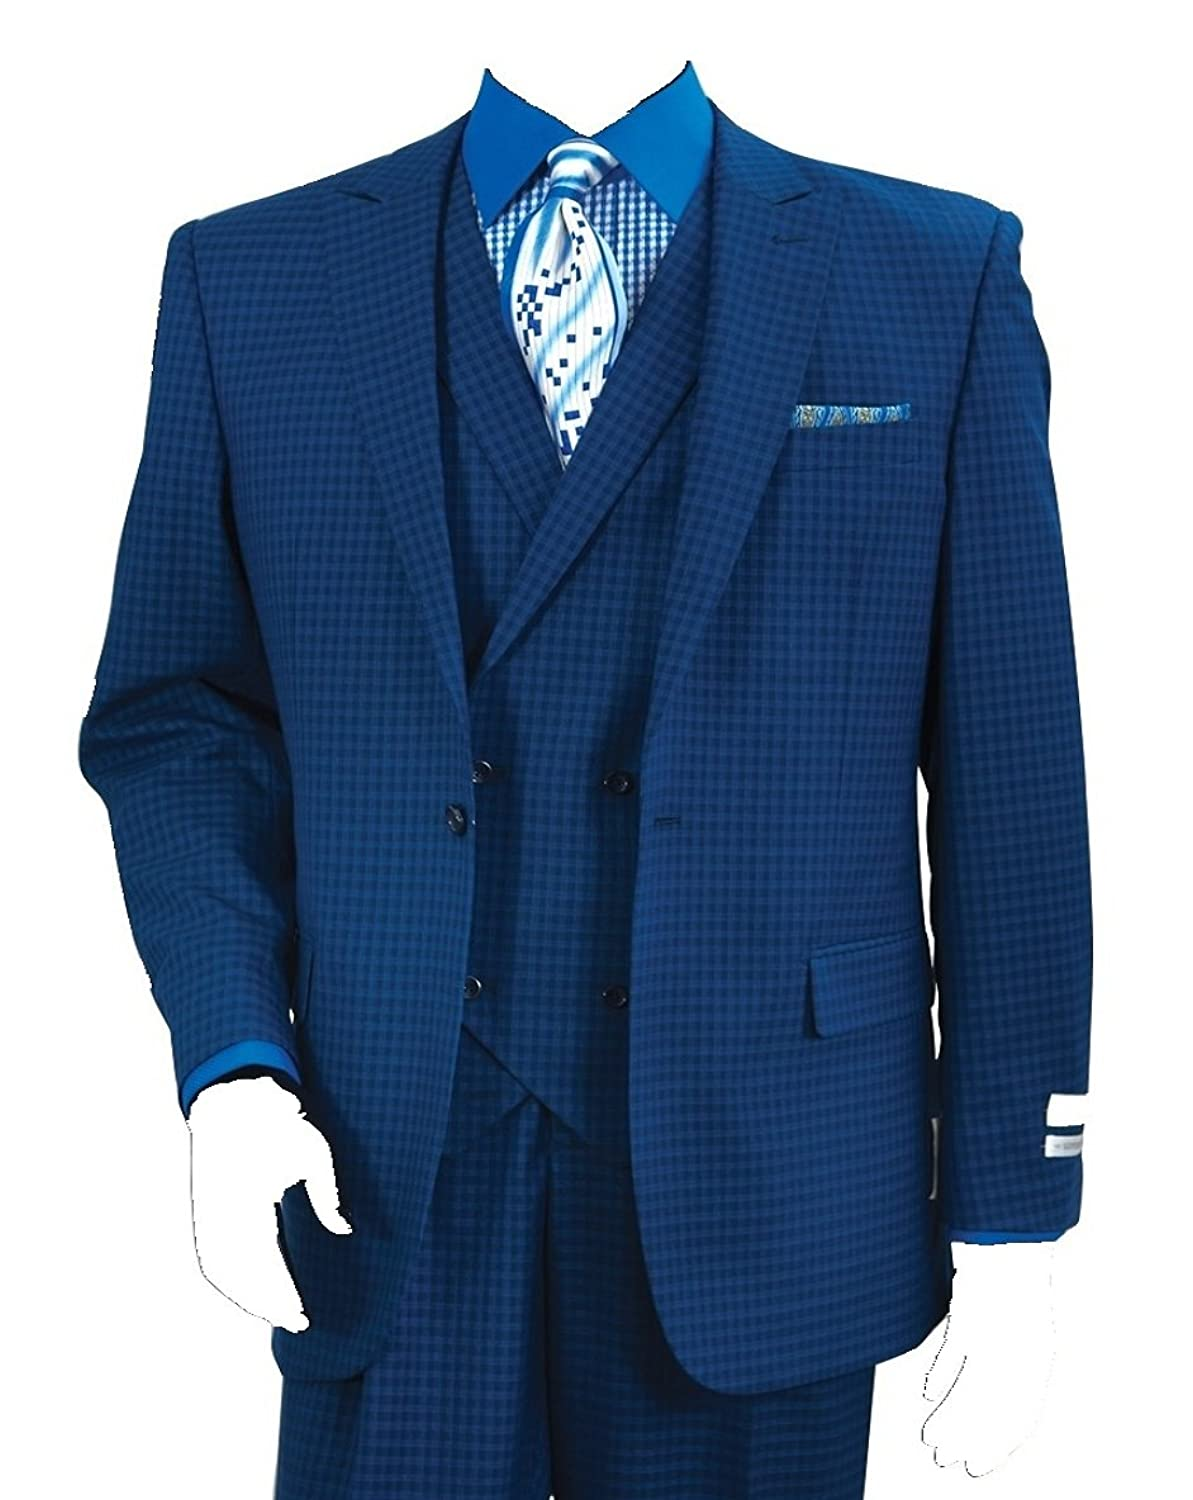 Men's Vintage Style Suits, Classic Suits Mens 3 Piece Single Button Mini-Plaid Pattern Suit (Indigo) $149.99 AT vintagedancer.com